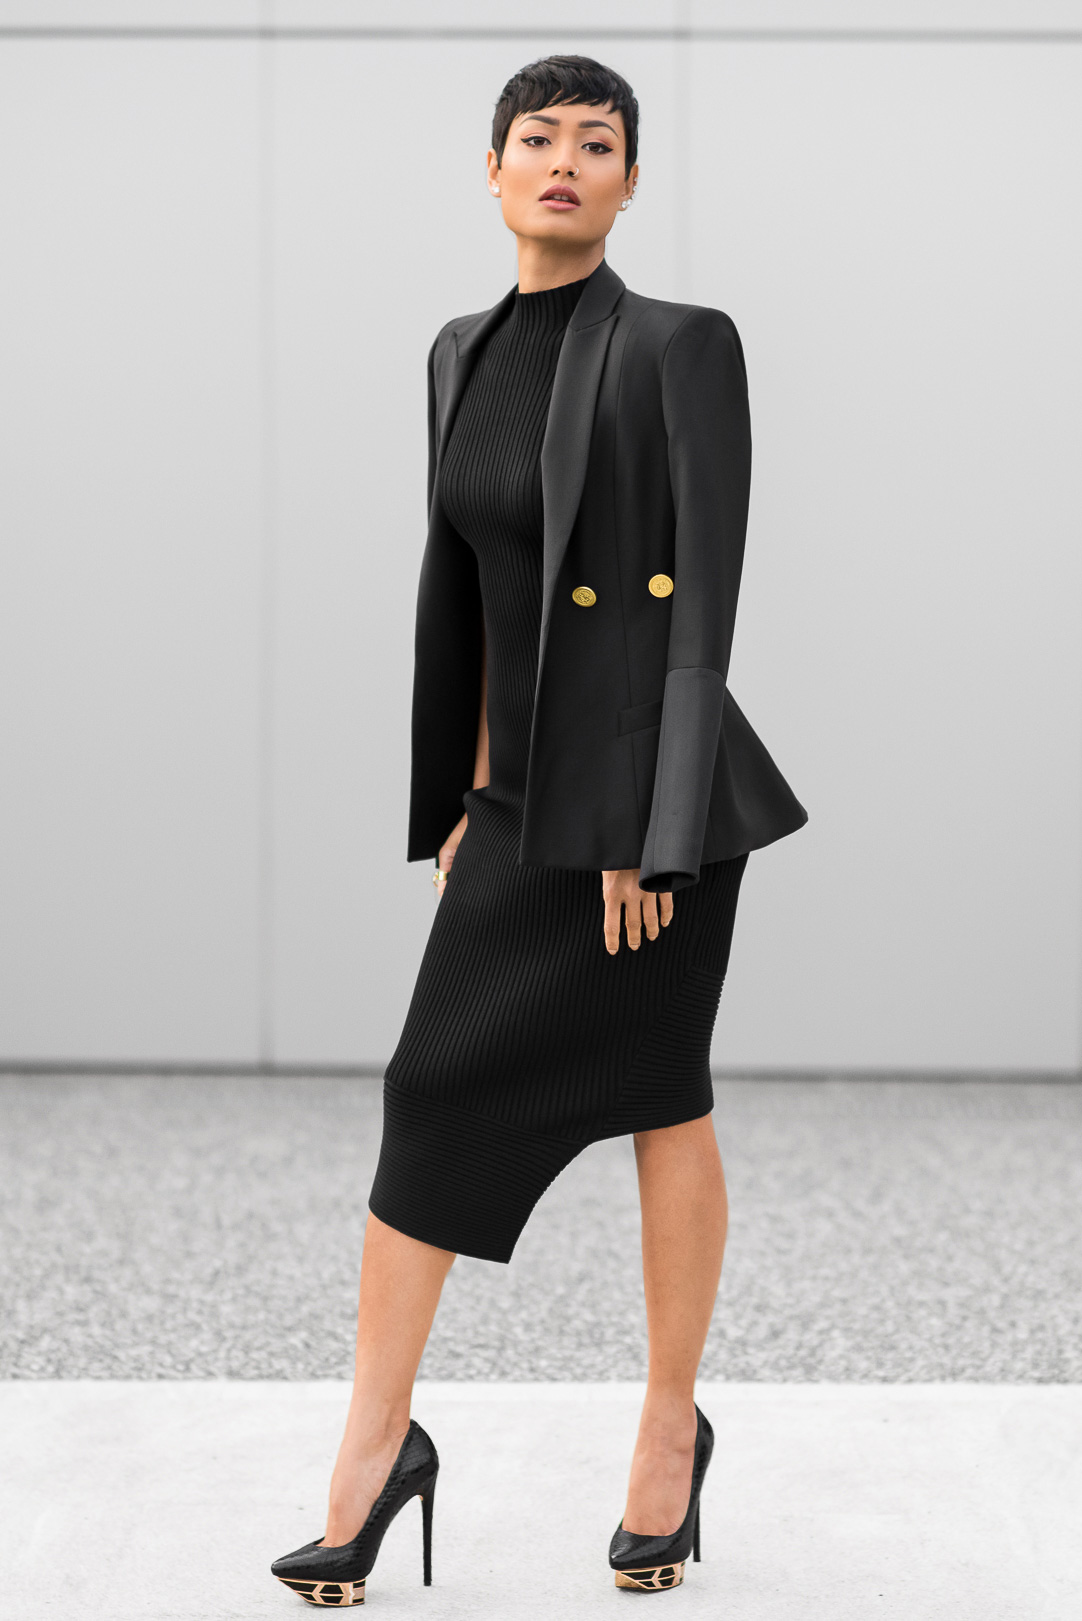 Micah-Gianneli-Ellery-Blazer-Camilla-and-marc-Australian-Designer-Ivy-Kirzhner-David-Jones